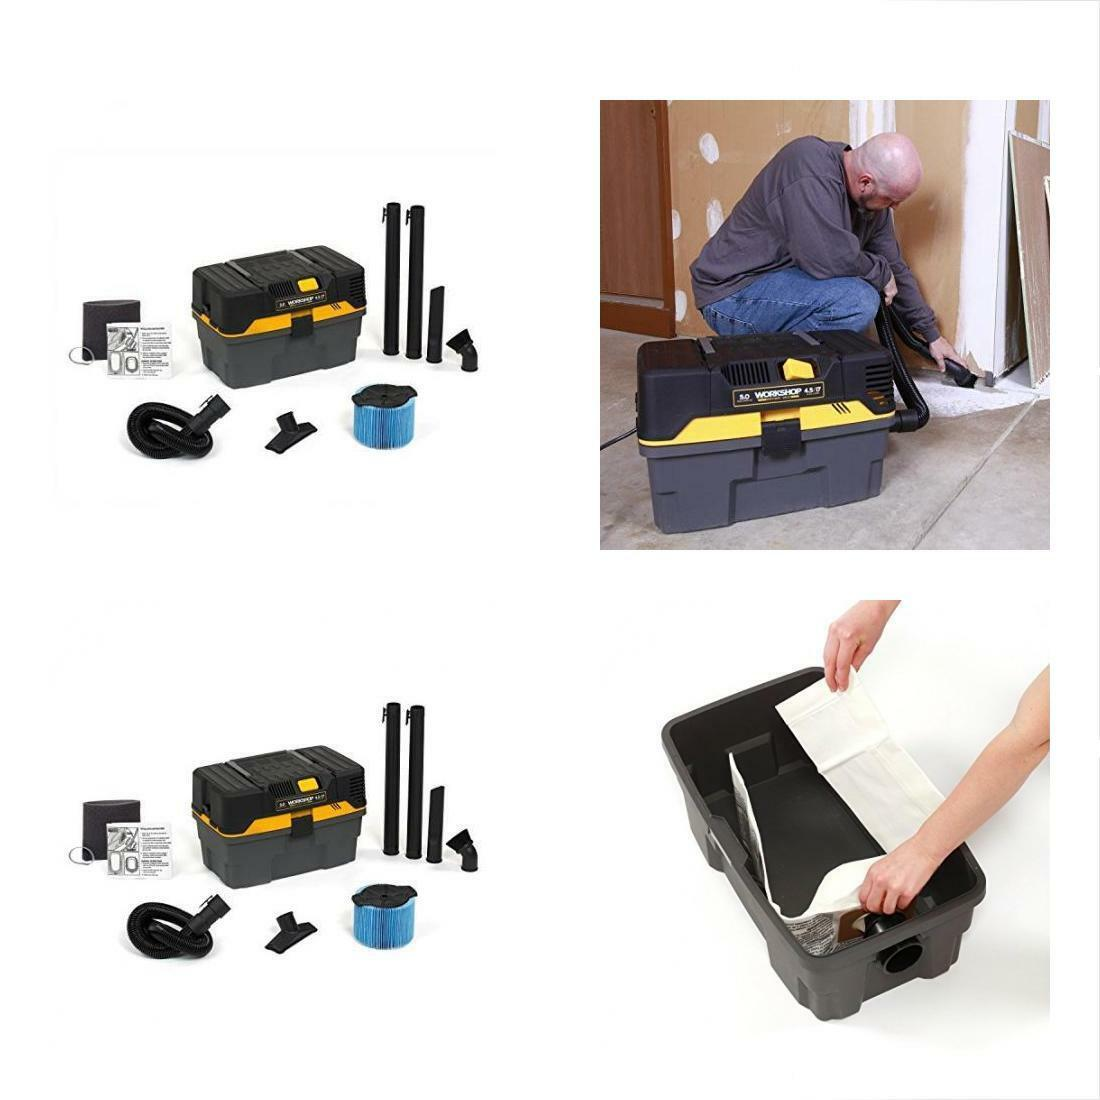 WORKSHOP WetDry Vacuums Wet WS0450VA Compact And Portable Cleaner For Cars Auto